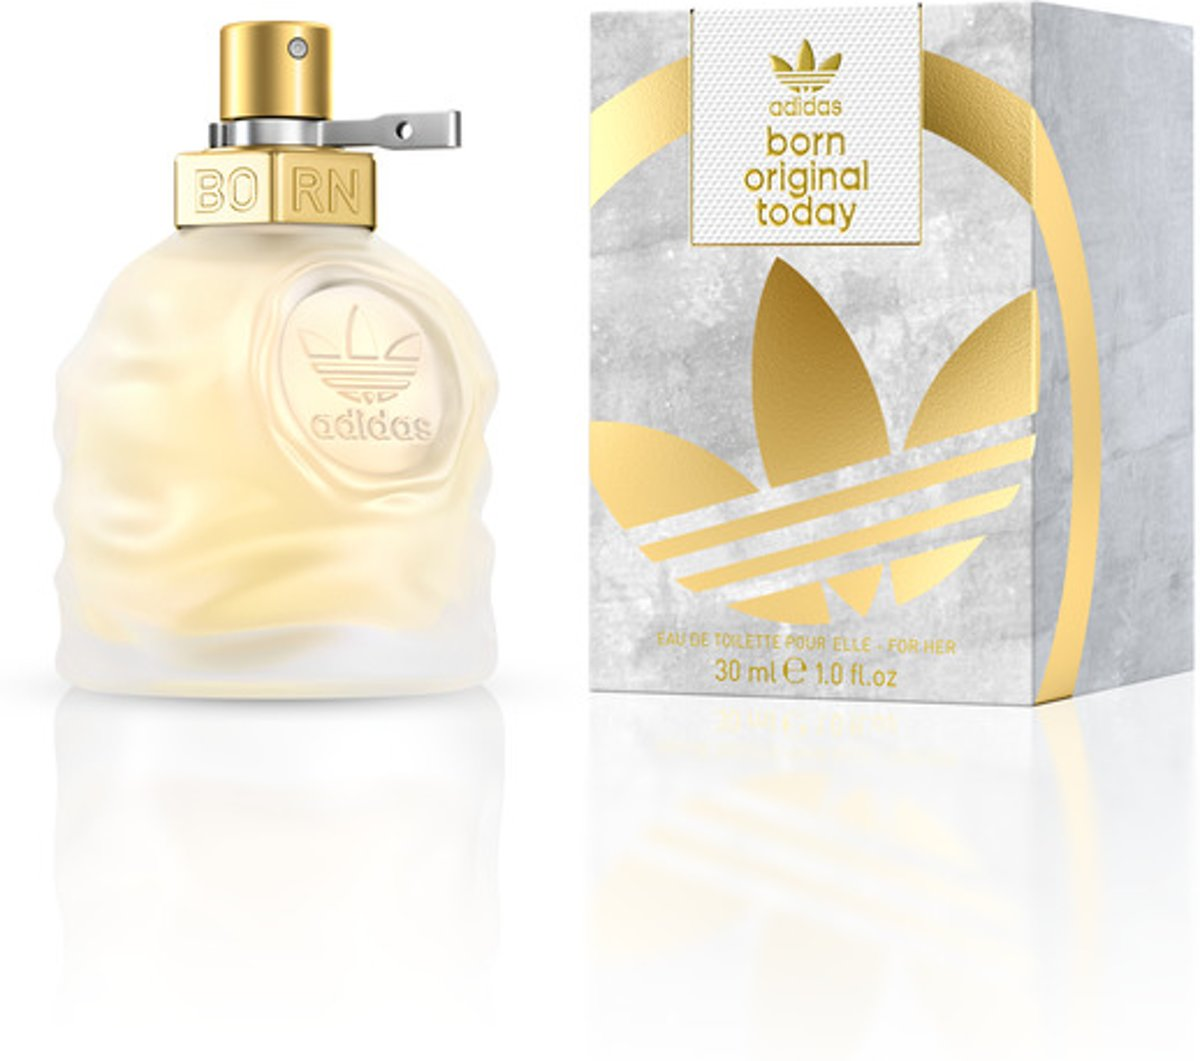 Adidas Vrouw Born Originals Today for her EDT 30 ml